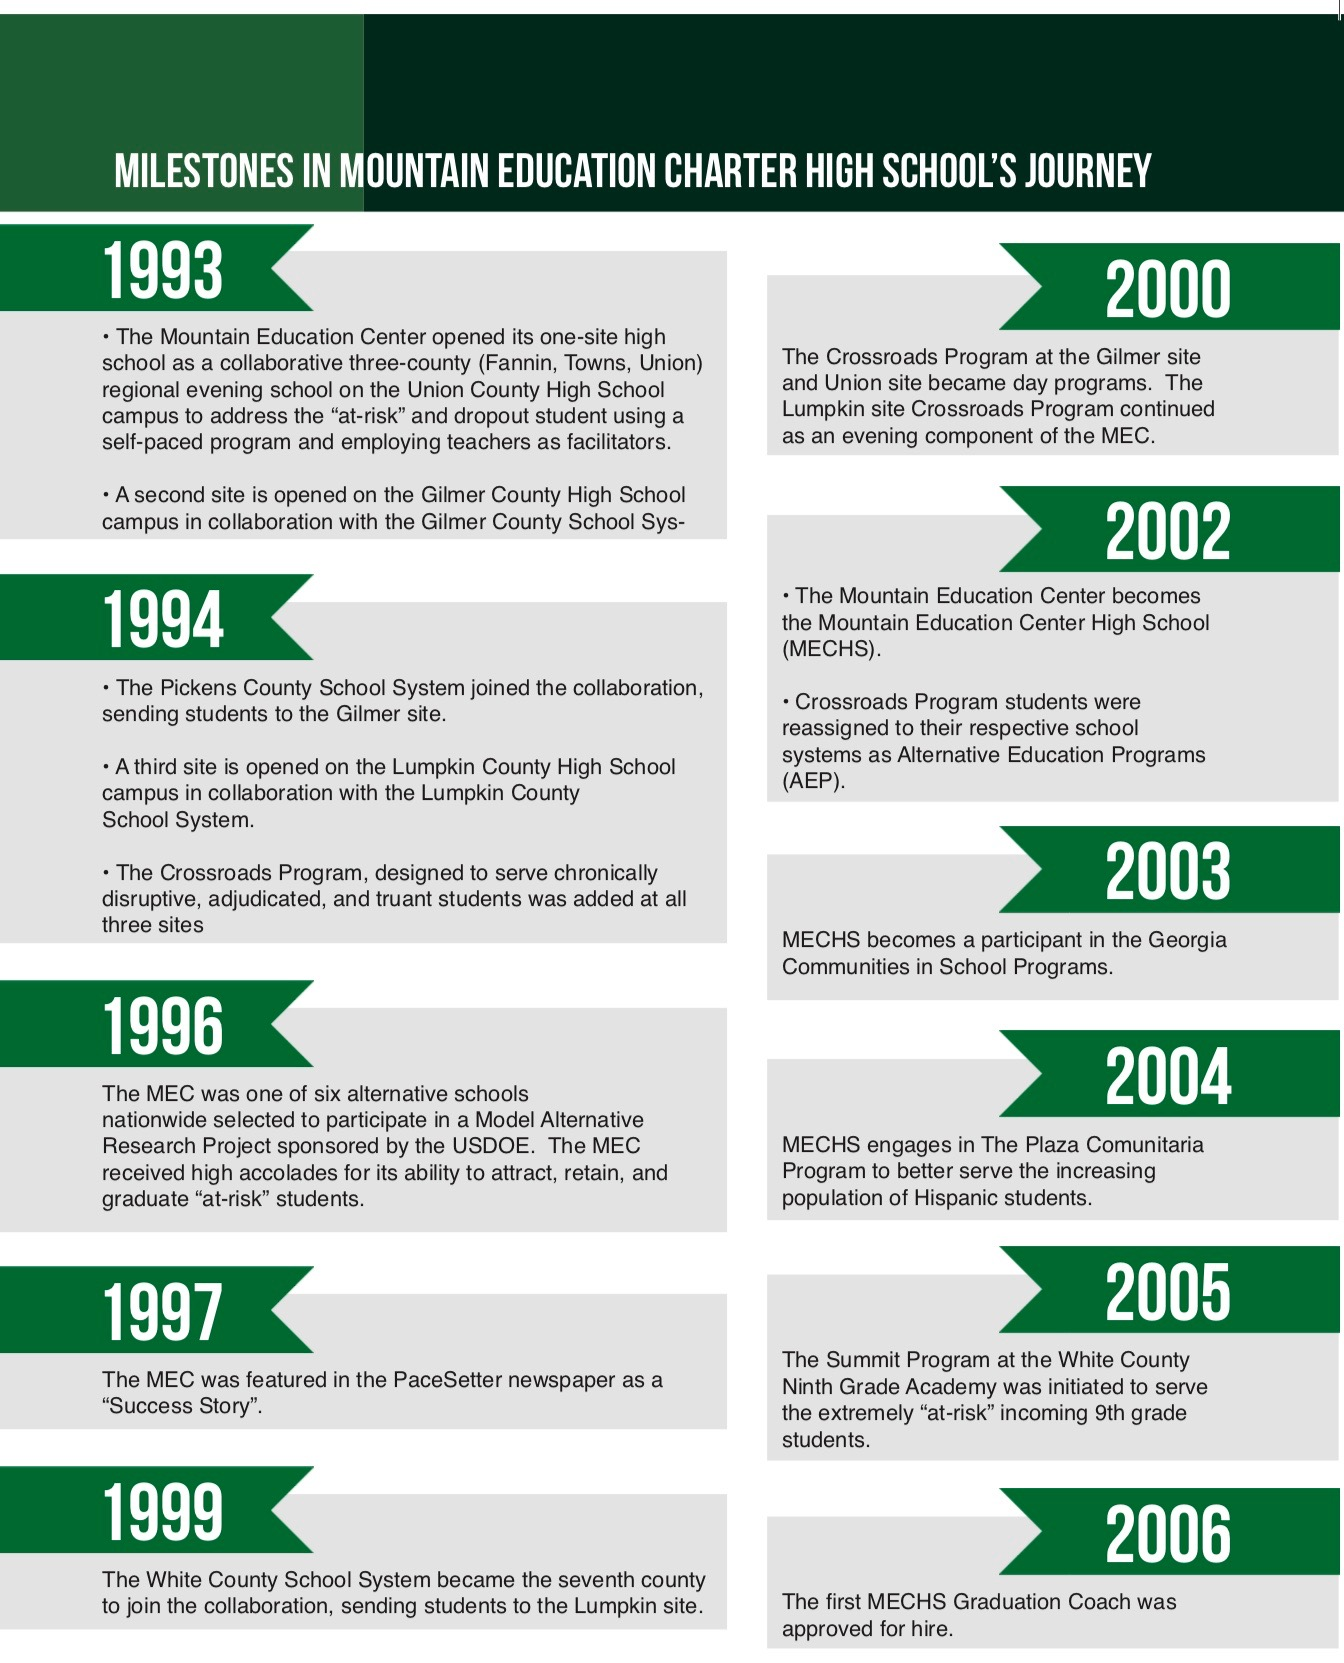 The History of MEC